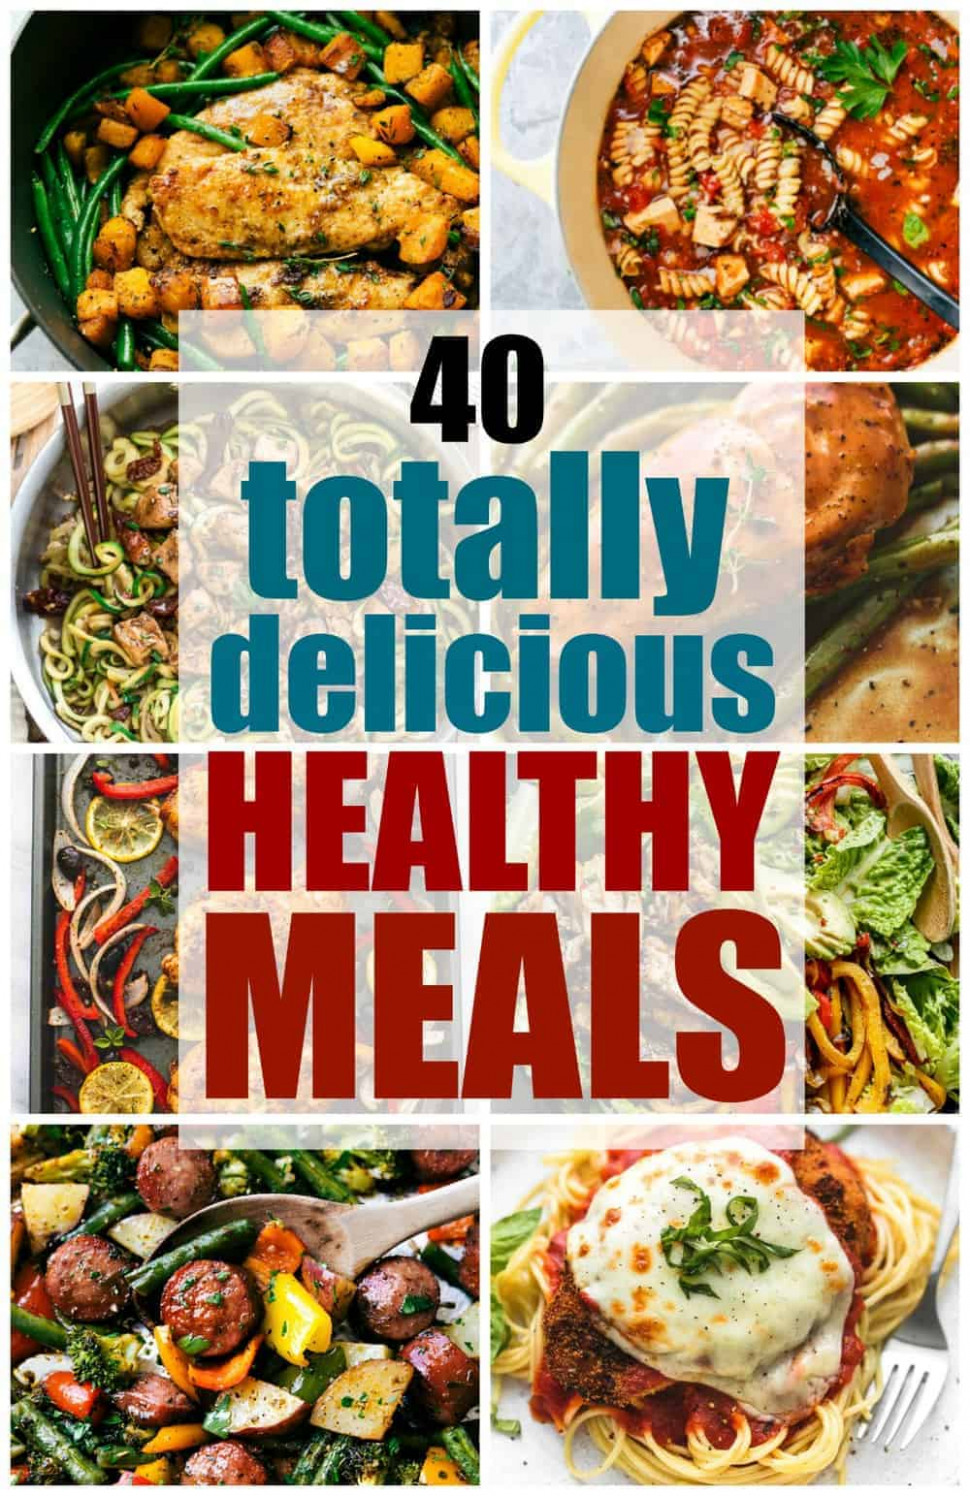 14 Totally Delicious Healthy Meals | The Recipe Critic - healthy recipes january